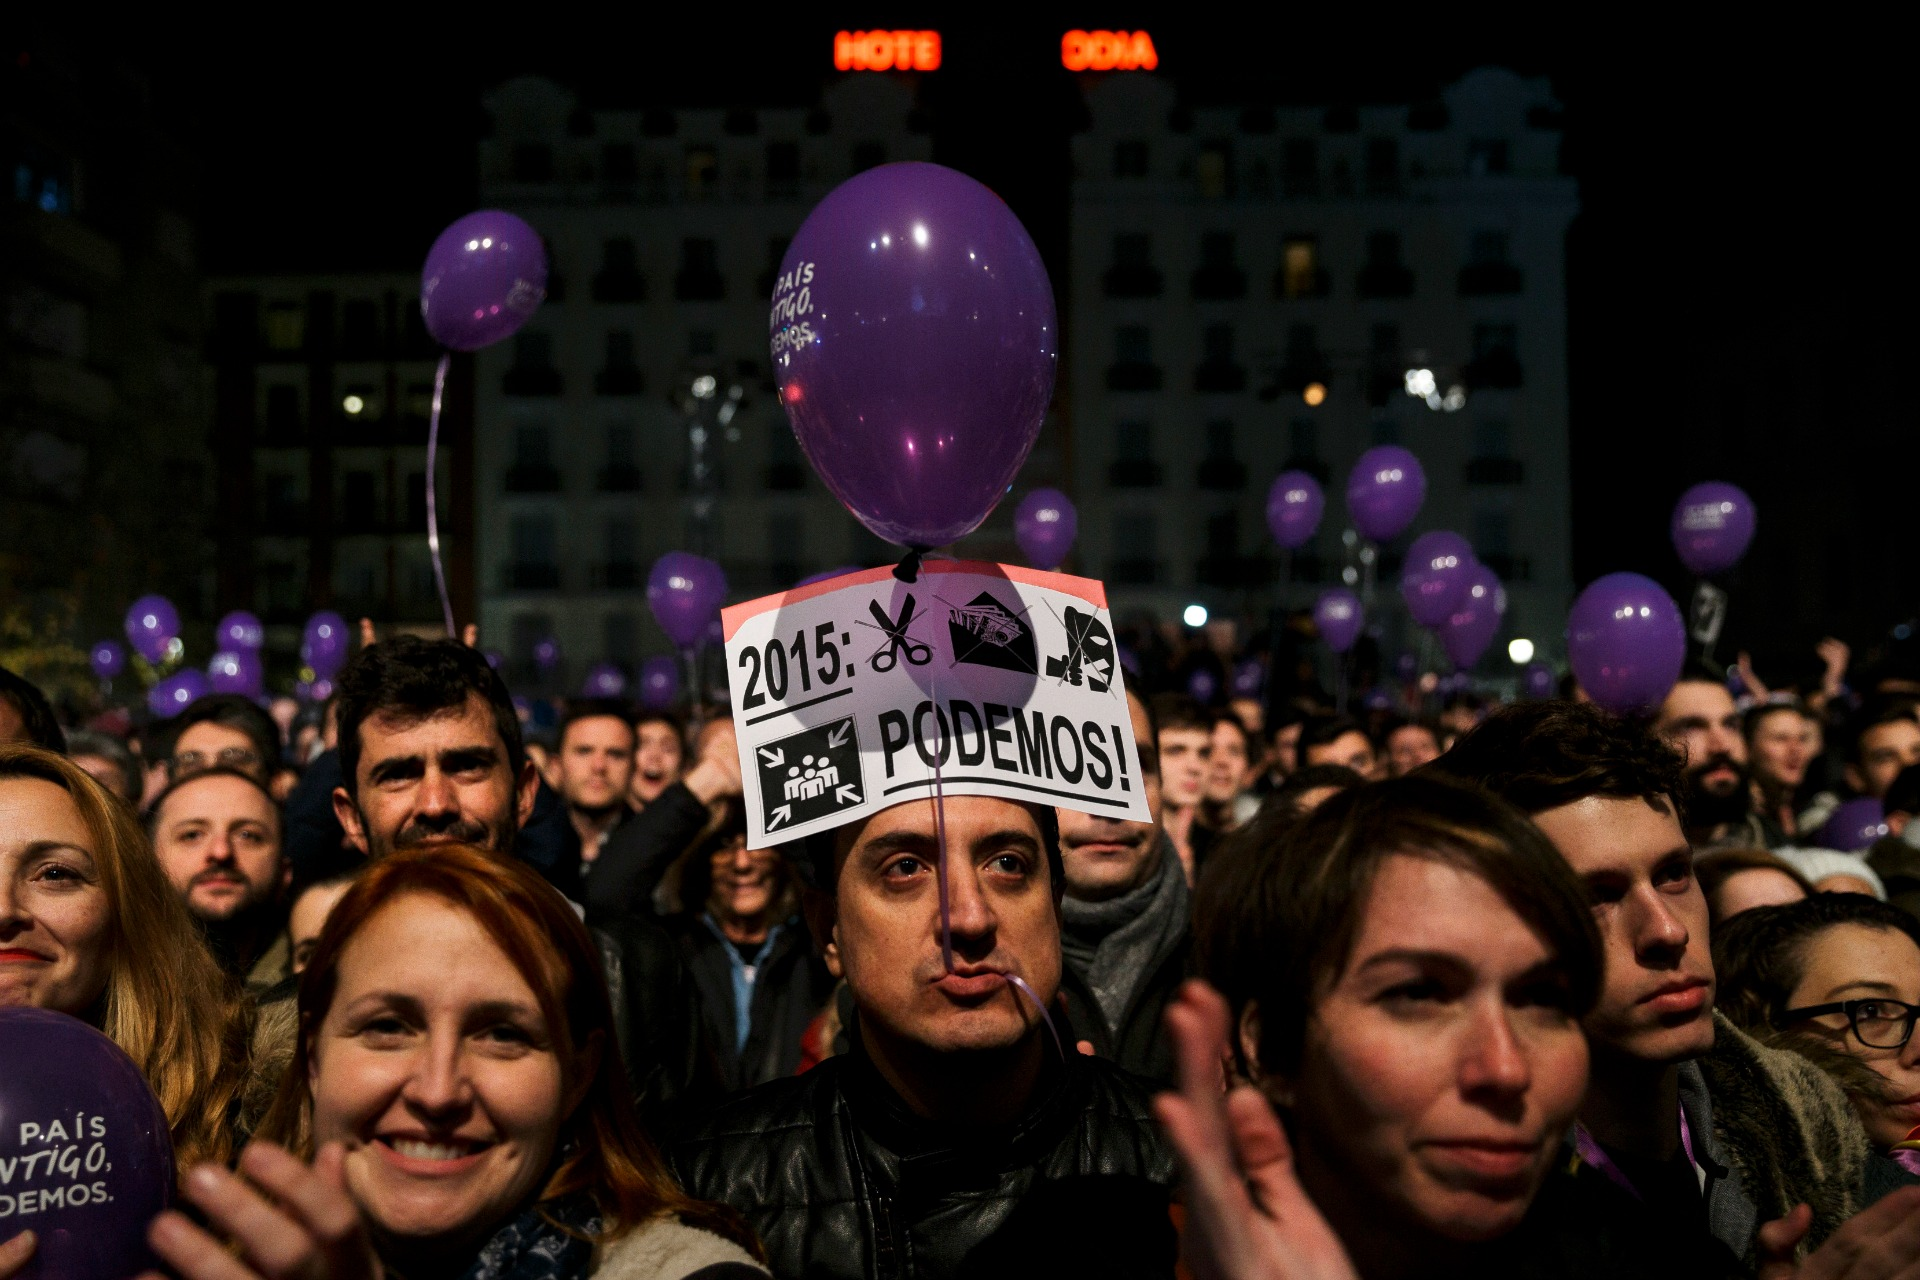 Supporters of the Podemos party wait for official results in Madrid, Sunday, Dec. 20, 2015. A strong showing by upstart parties Podemos and Ciudadanos is threatening to upend the country's traditional two-party system in Spain's general election, with exit polls and early results projecting that the ruling Popular Party won the most votes but fell far short of a parliamentary majority and risks being booted from power.(AP Photo/Daniel Ochoa de Olza)